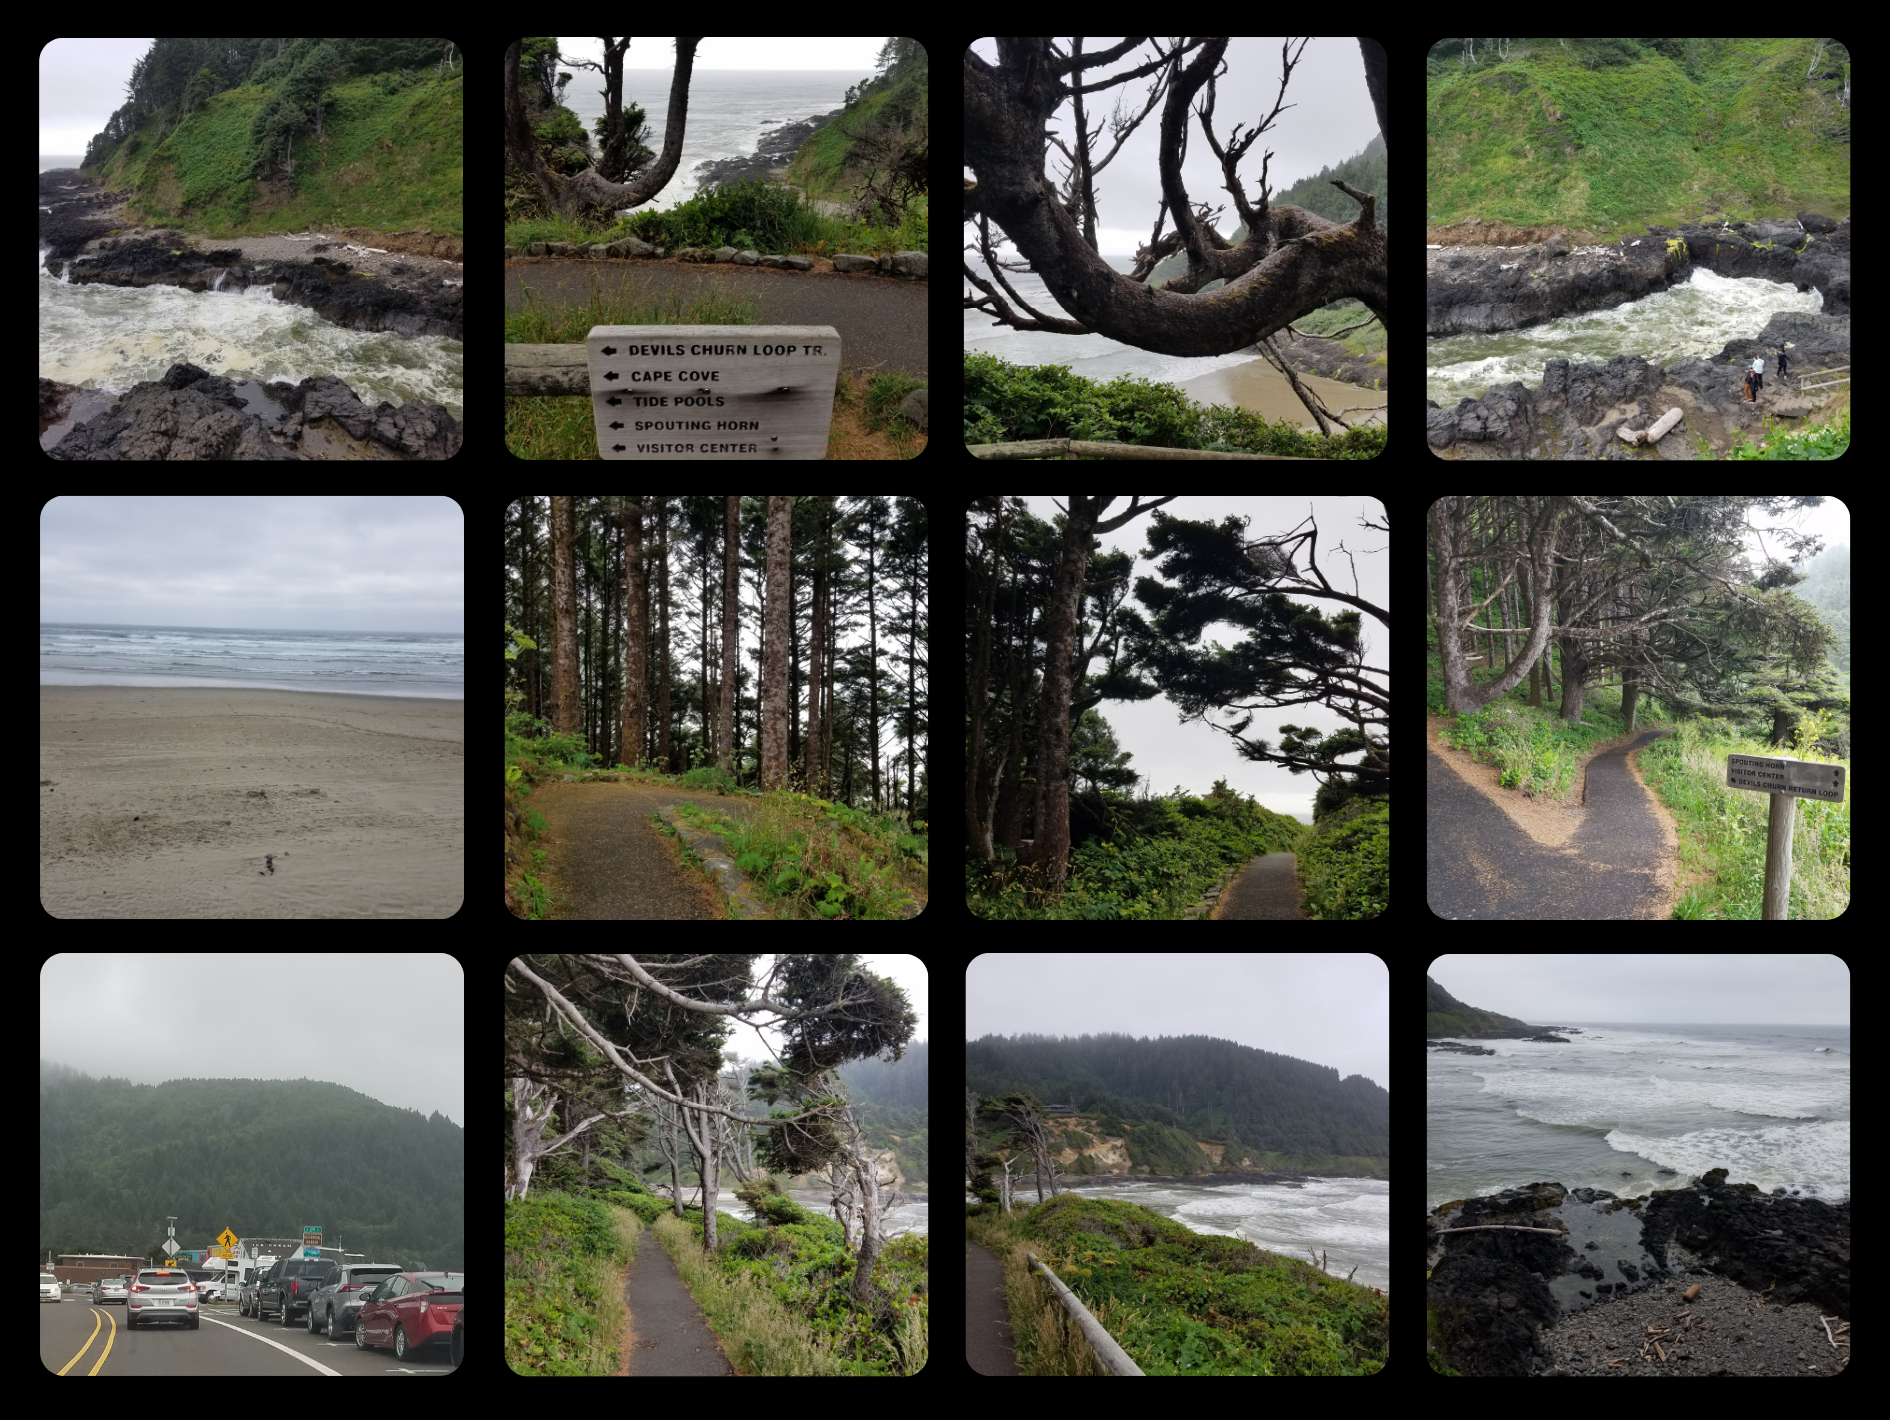 drive-down-the-coast-with-some-walks